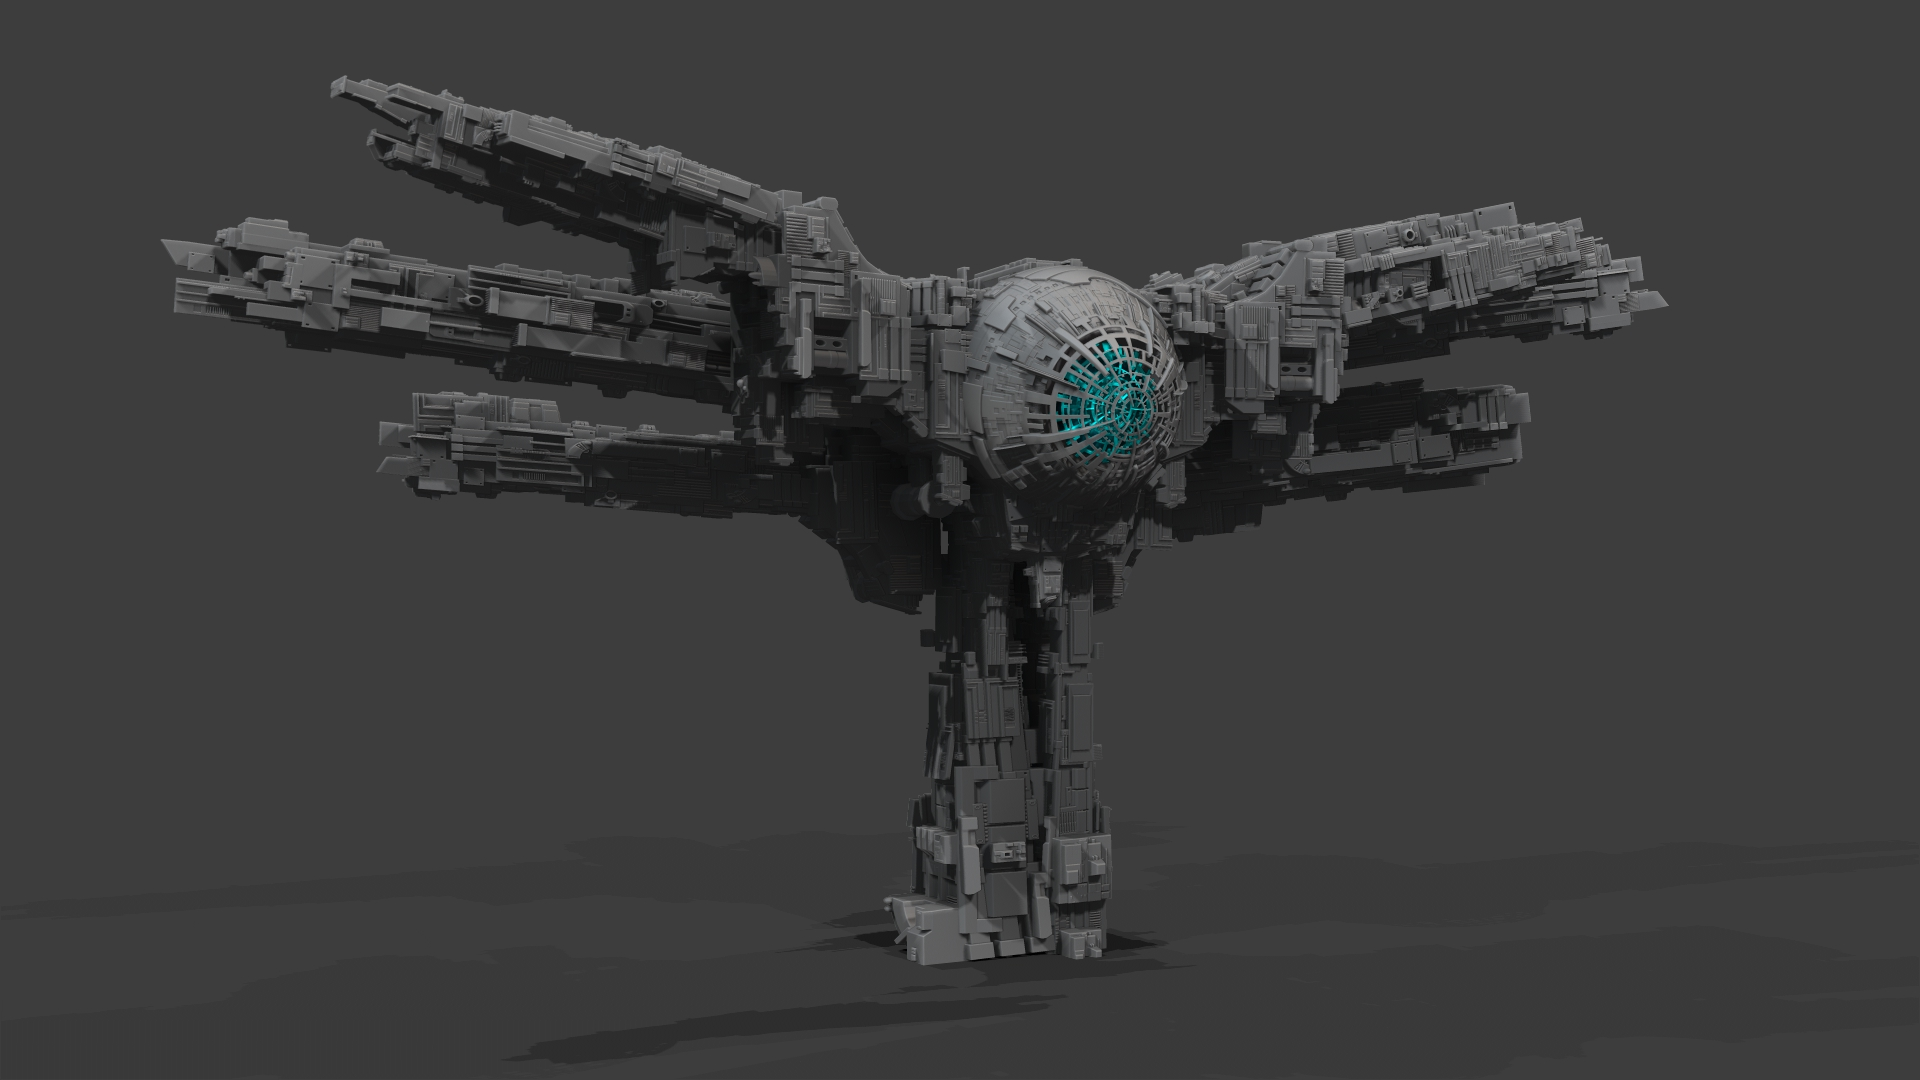 Junkship design 6/12/13. Concept by  Sean Thurlow . Zbrush model by  Sterling Sheehy